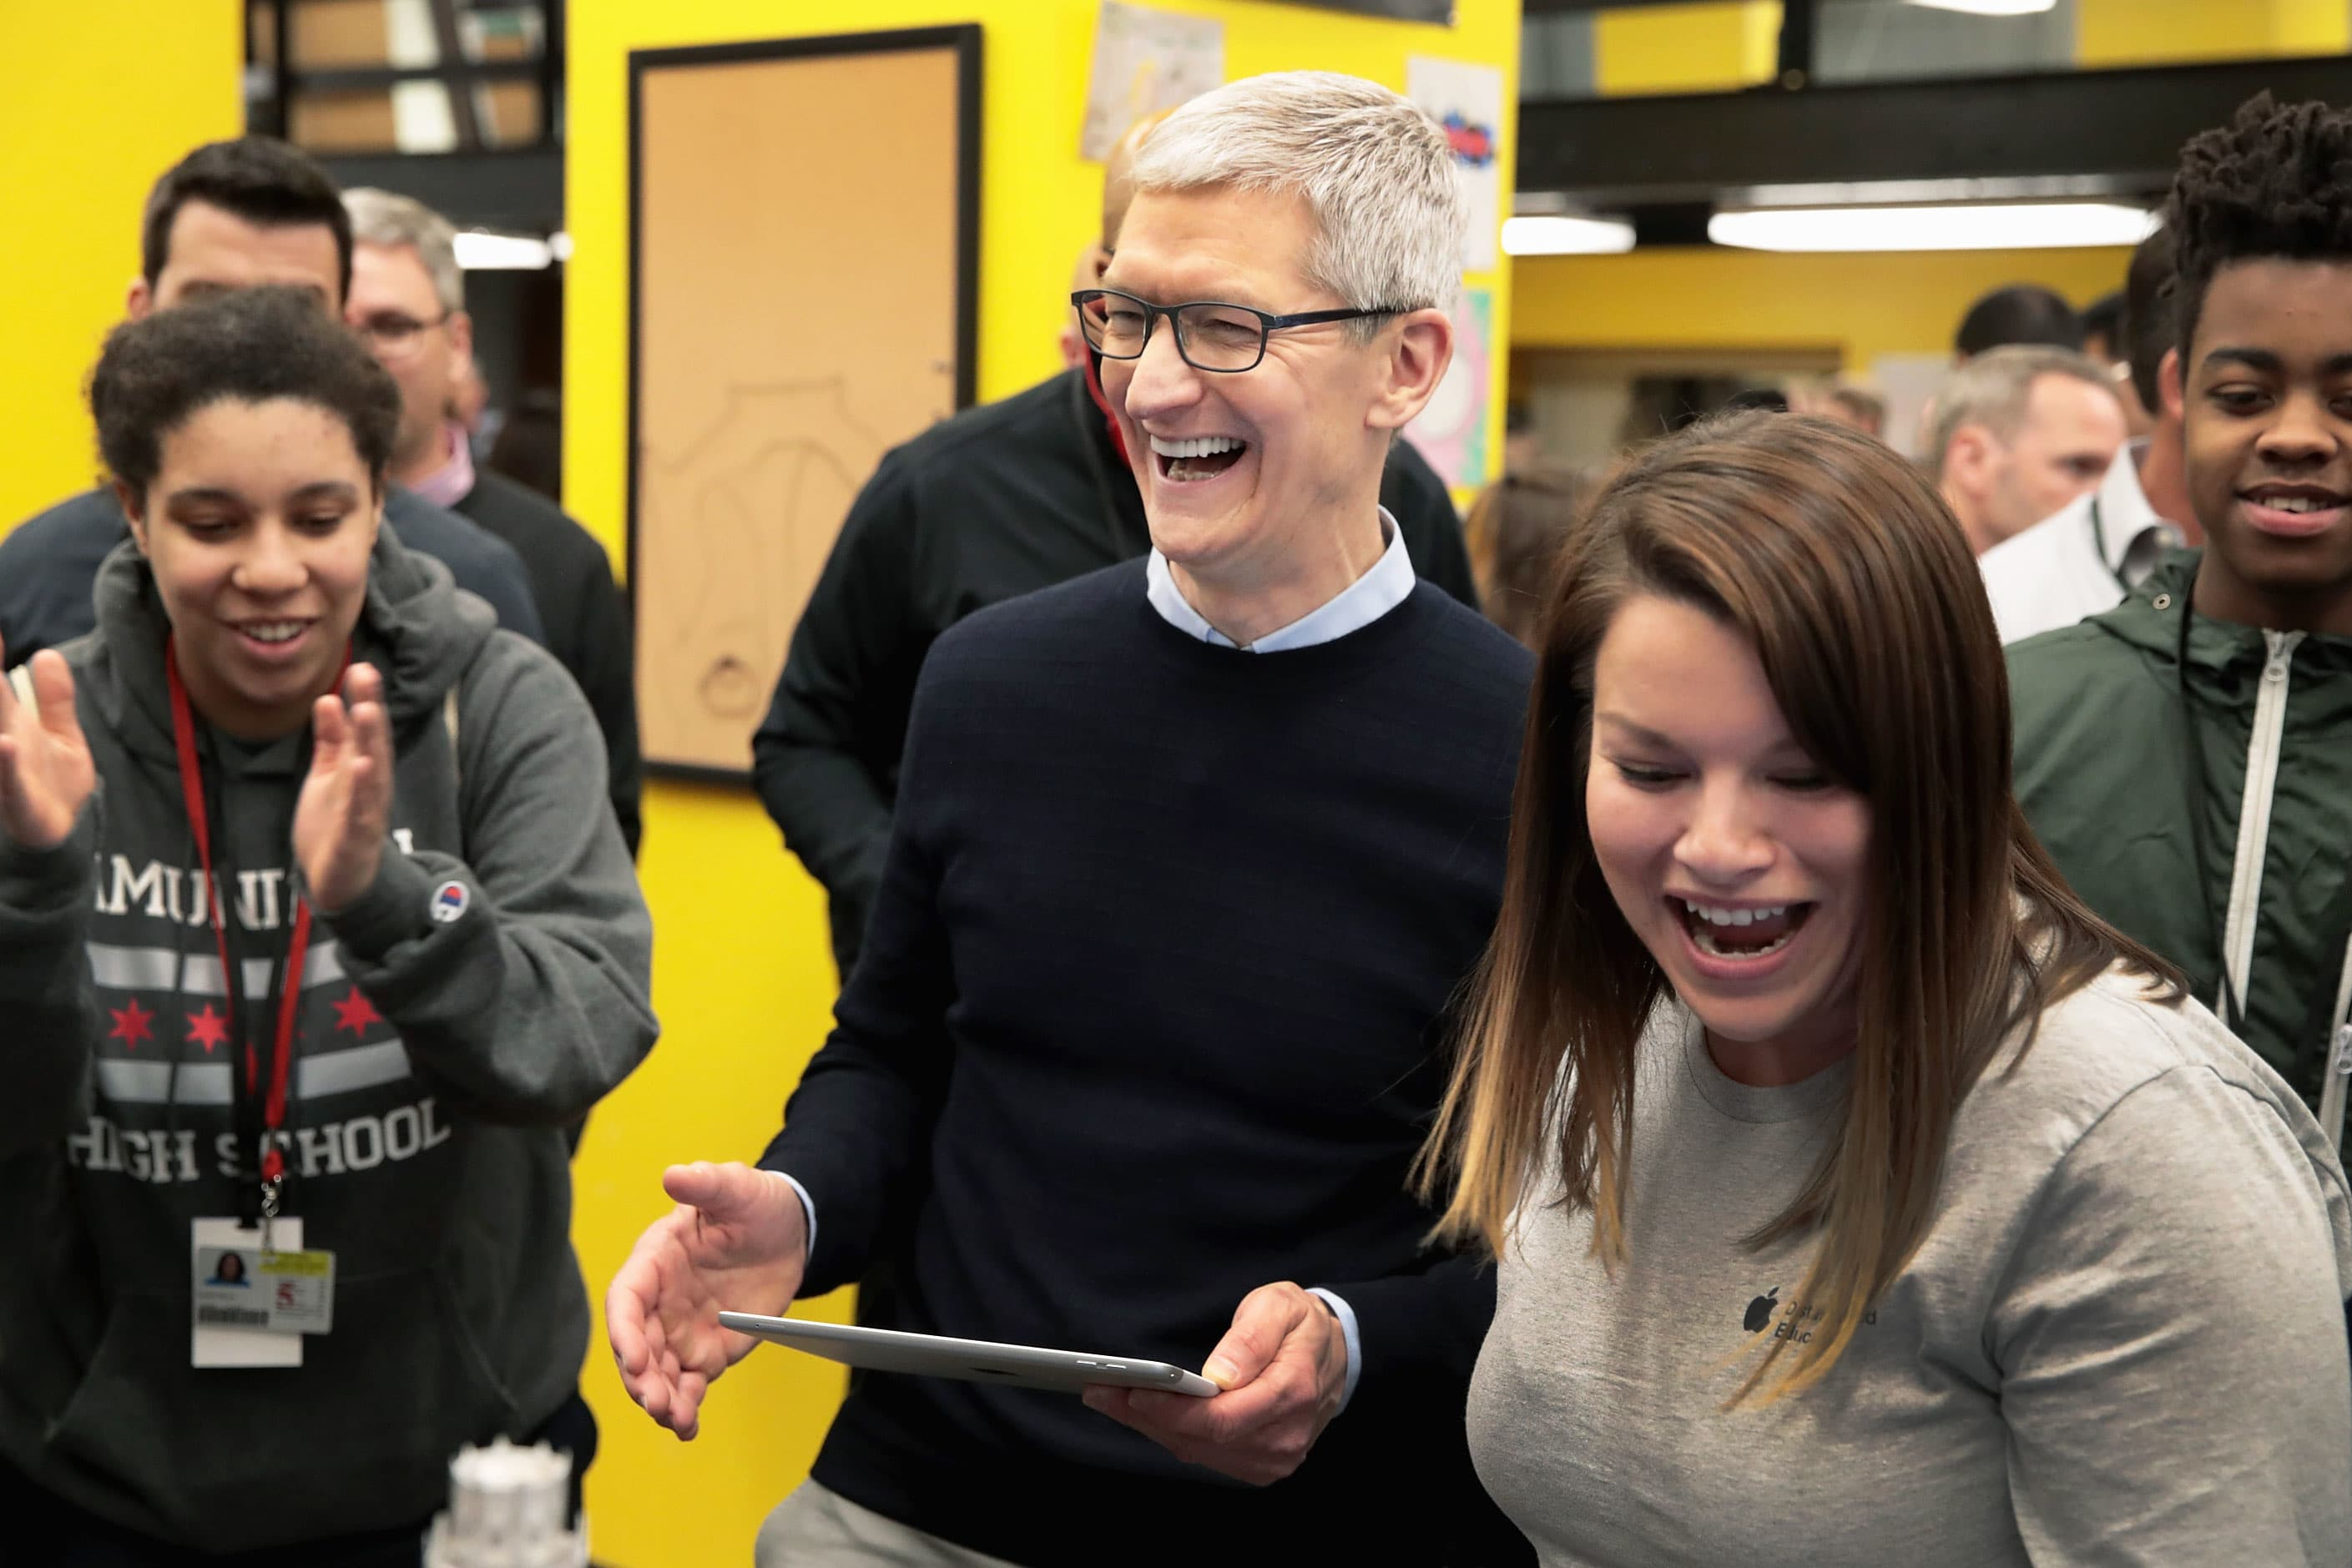 Google Apple And 12 Other Companies That No Longer Require Employees To Have A College Degree